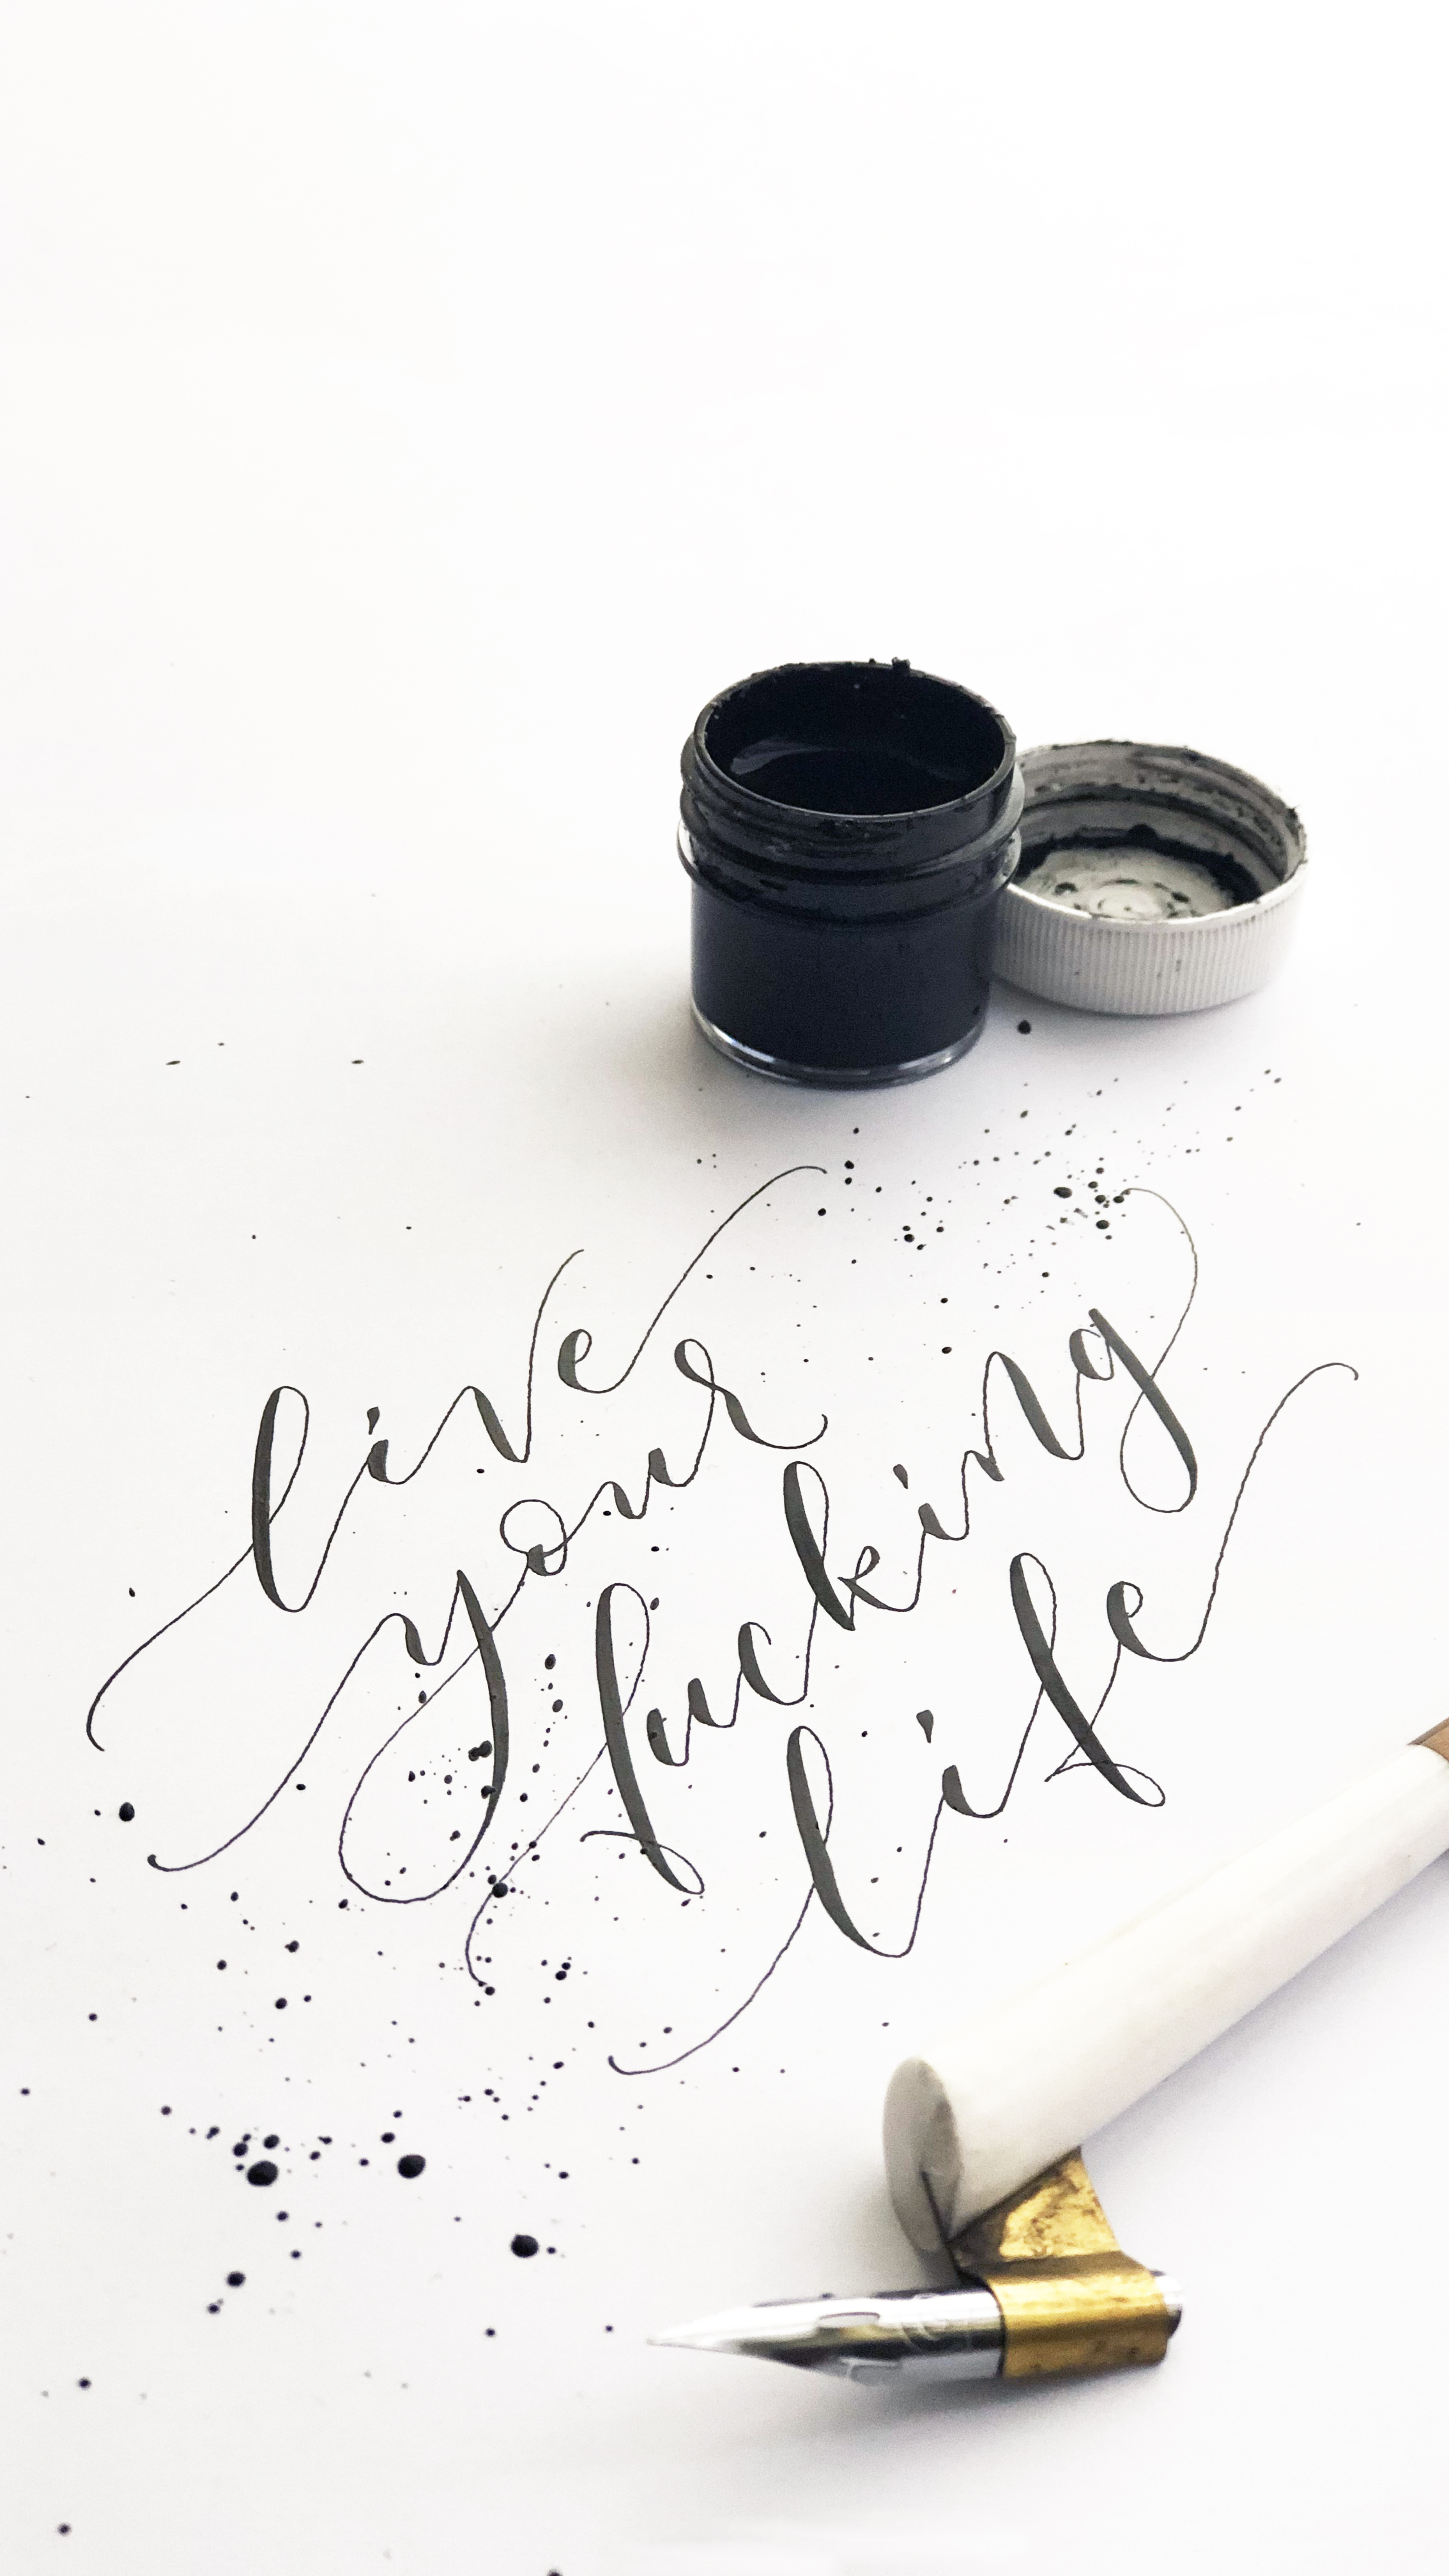 Live your fucking life calligraphy mobile wallpaper